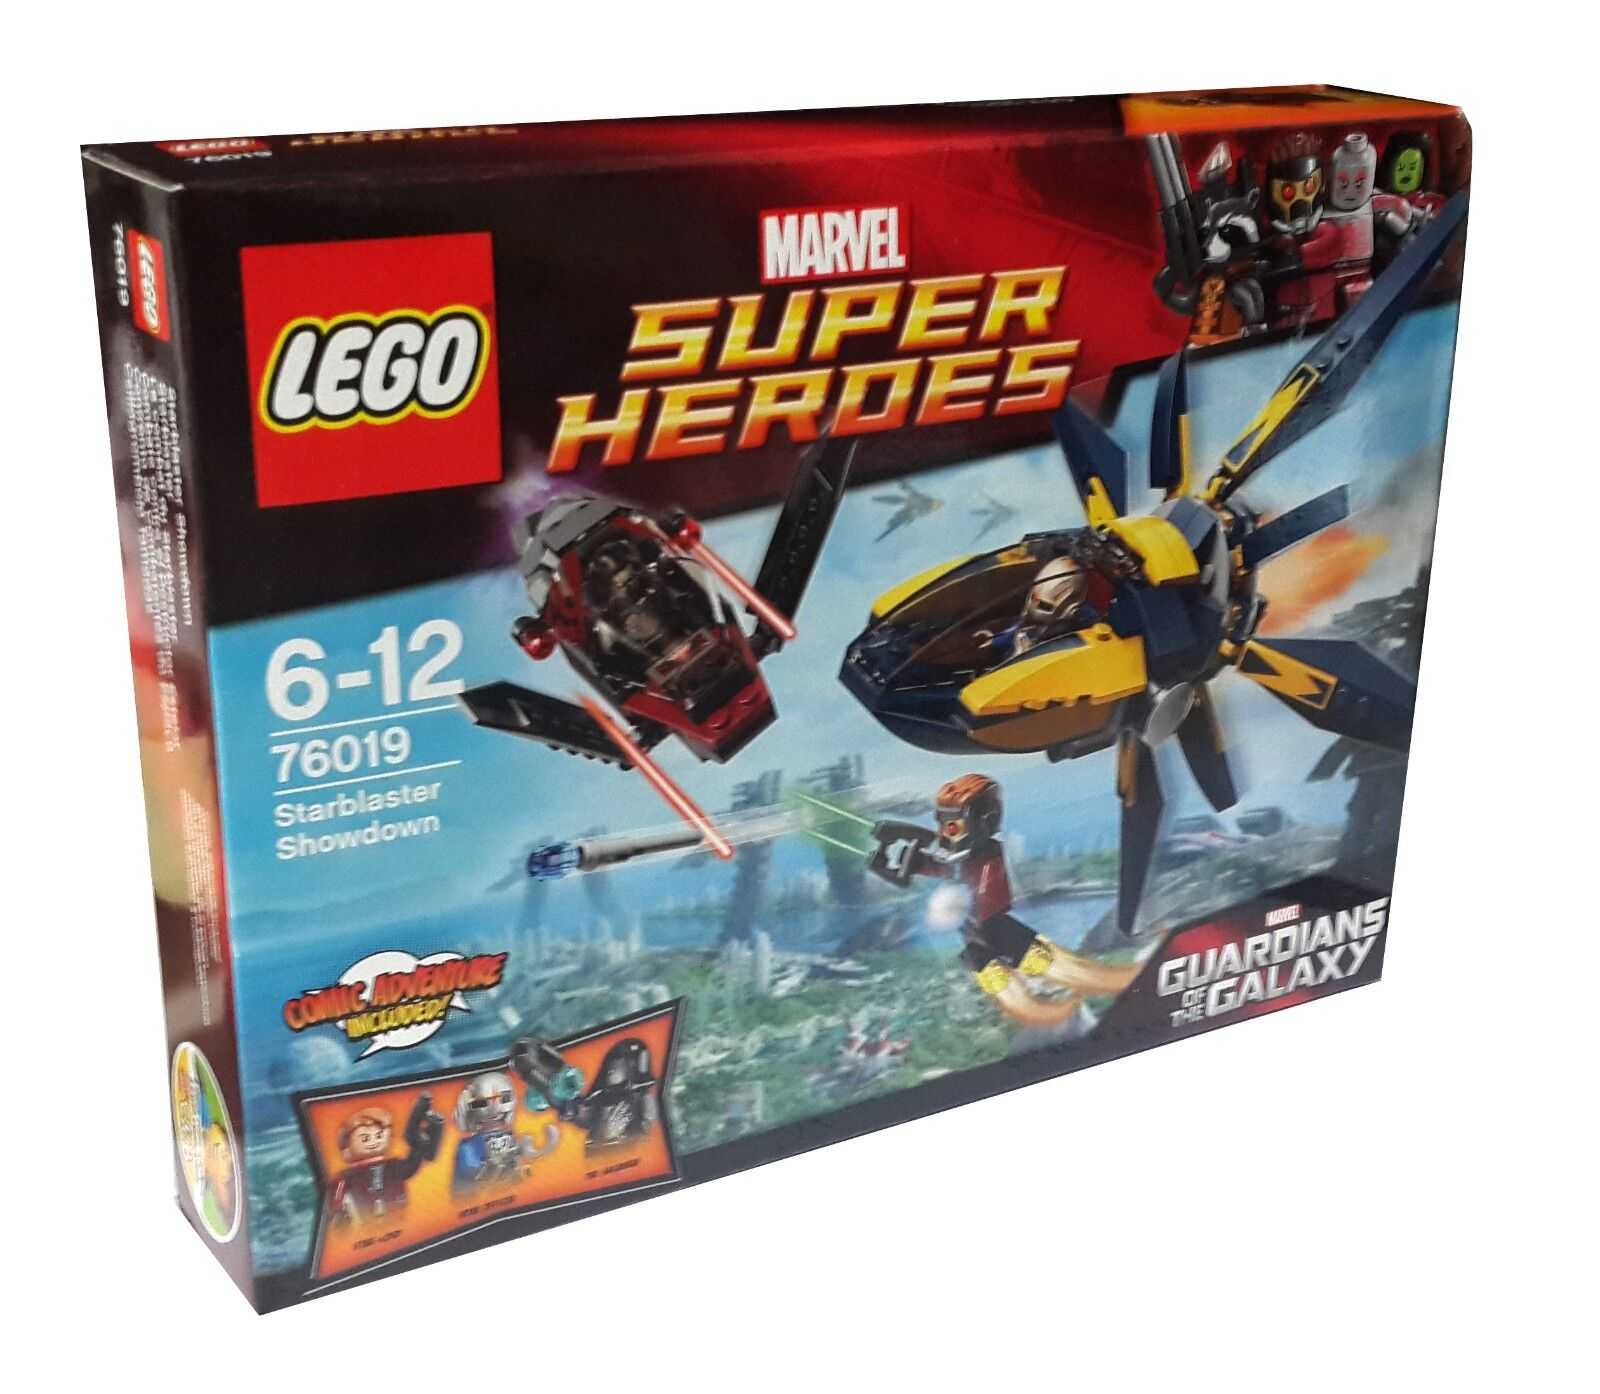 LEGO 76019  Super Heroes Starblaster Showdown